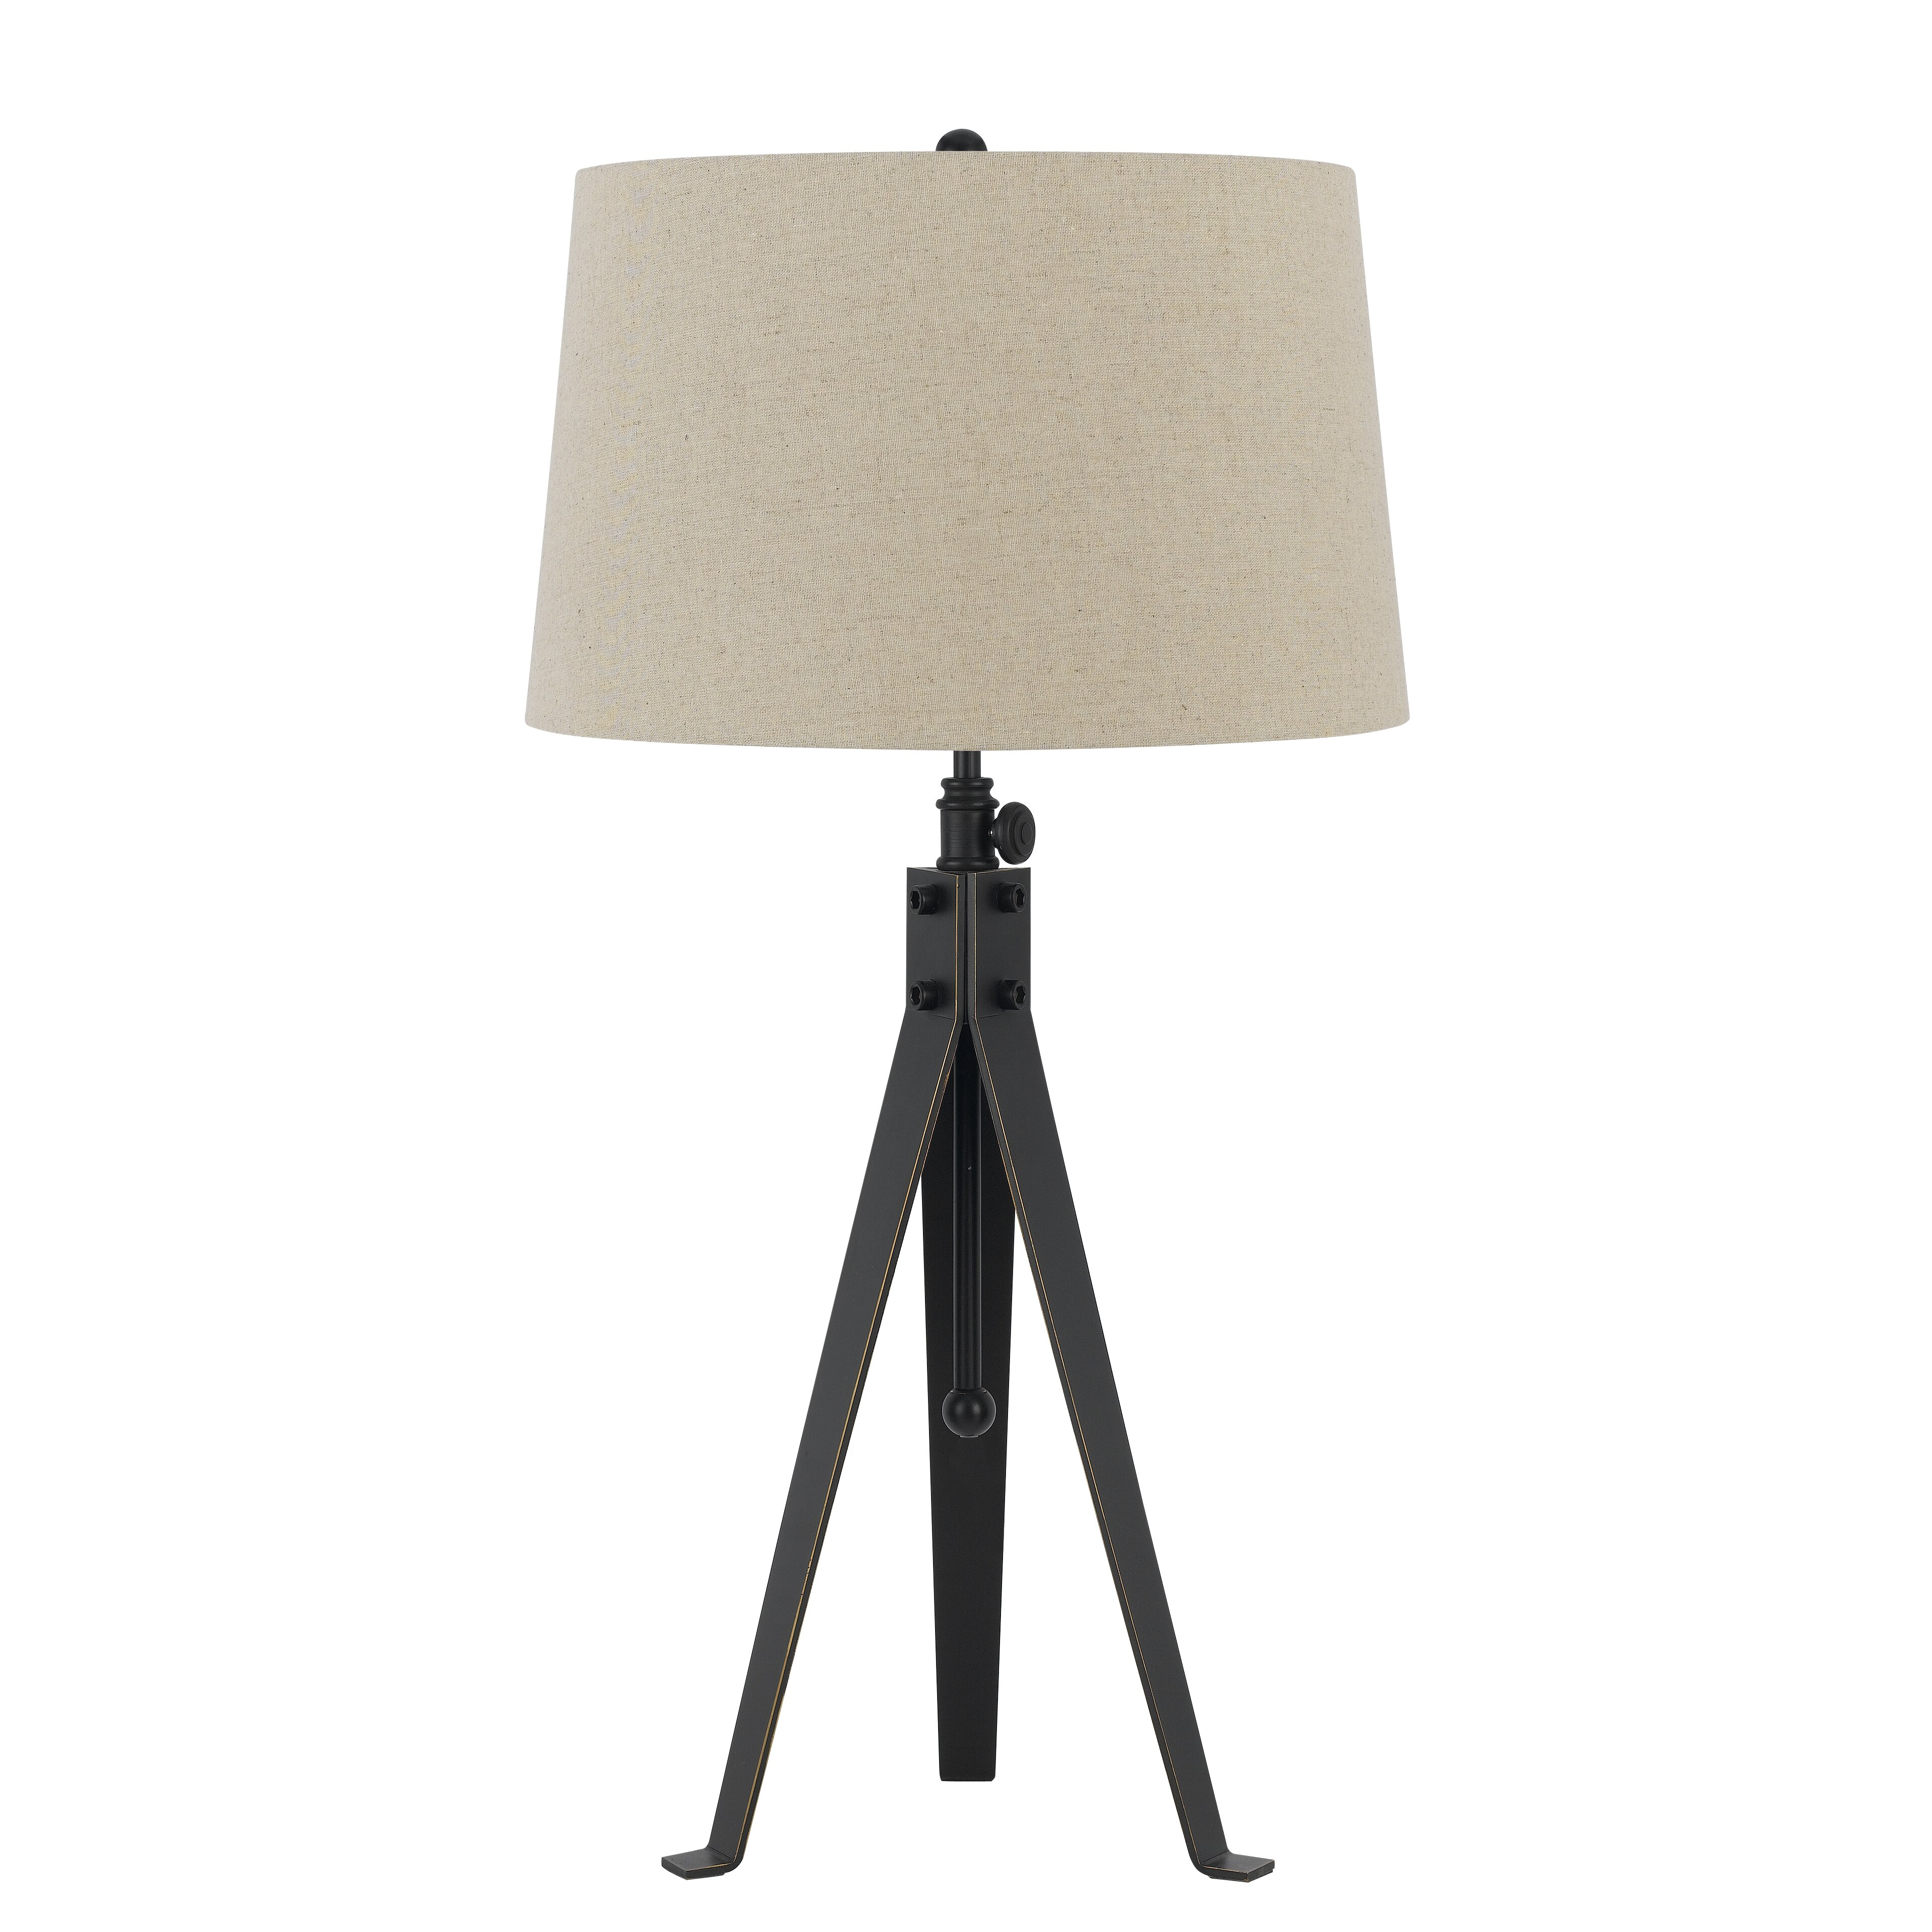 cal lighting tripod 3 way 32 5 h table lamp with empire shade. Black Bedroom Furniture Sets. Home Design Ideas